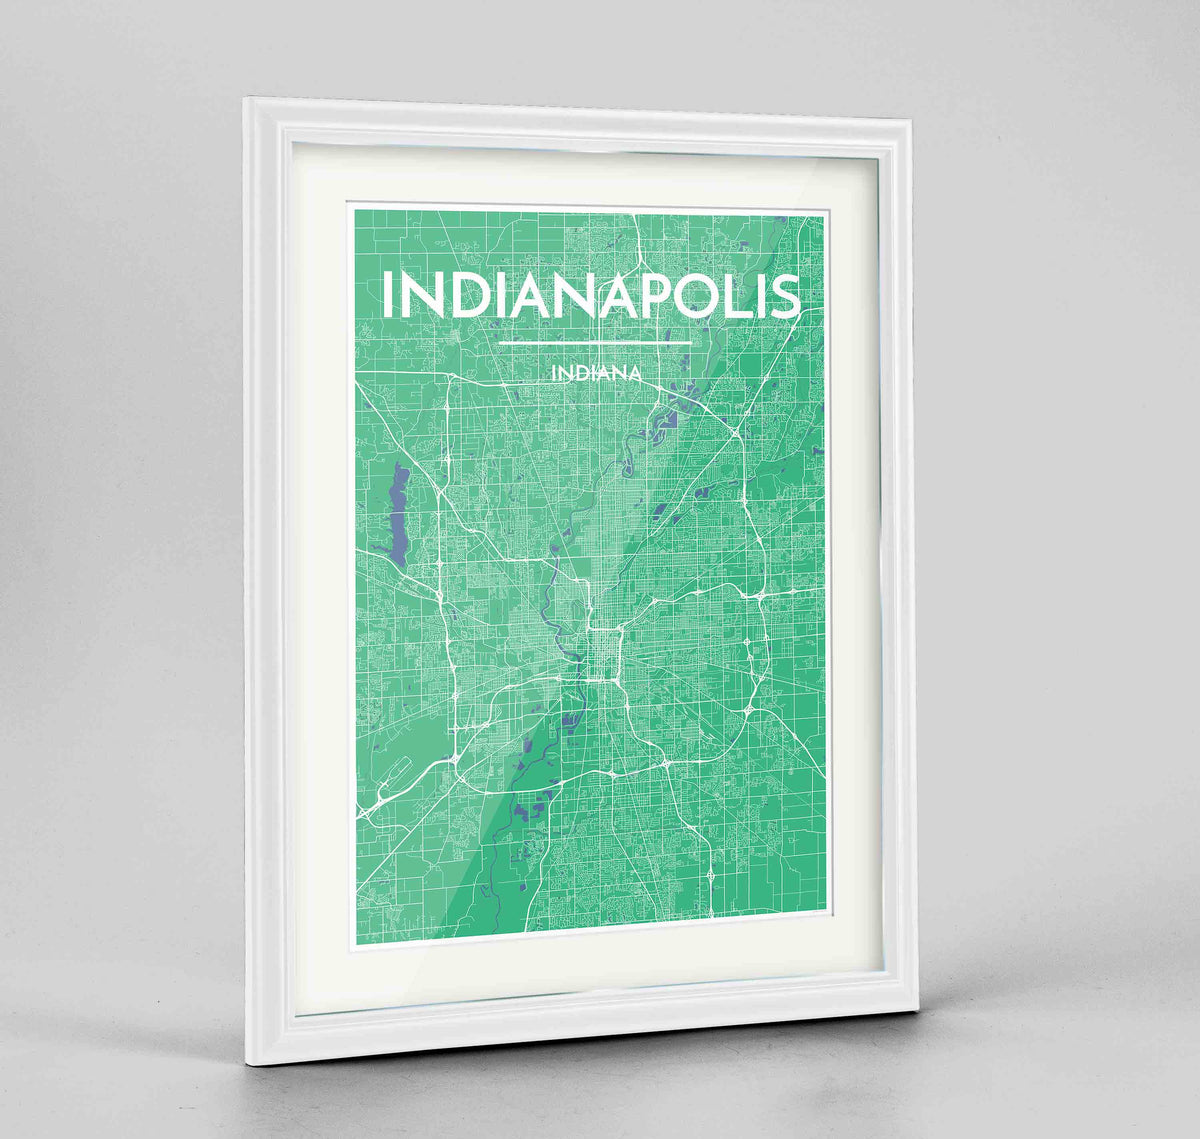 "Framed Indianapolis Map Art Print 24x36"" Traditional White frame Point Two Design Group"